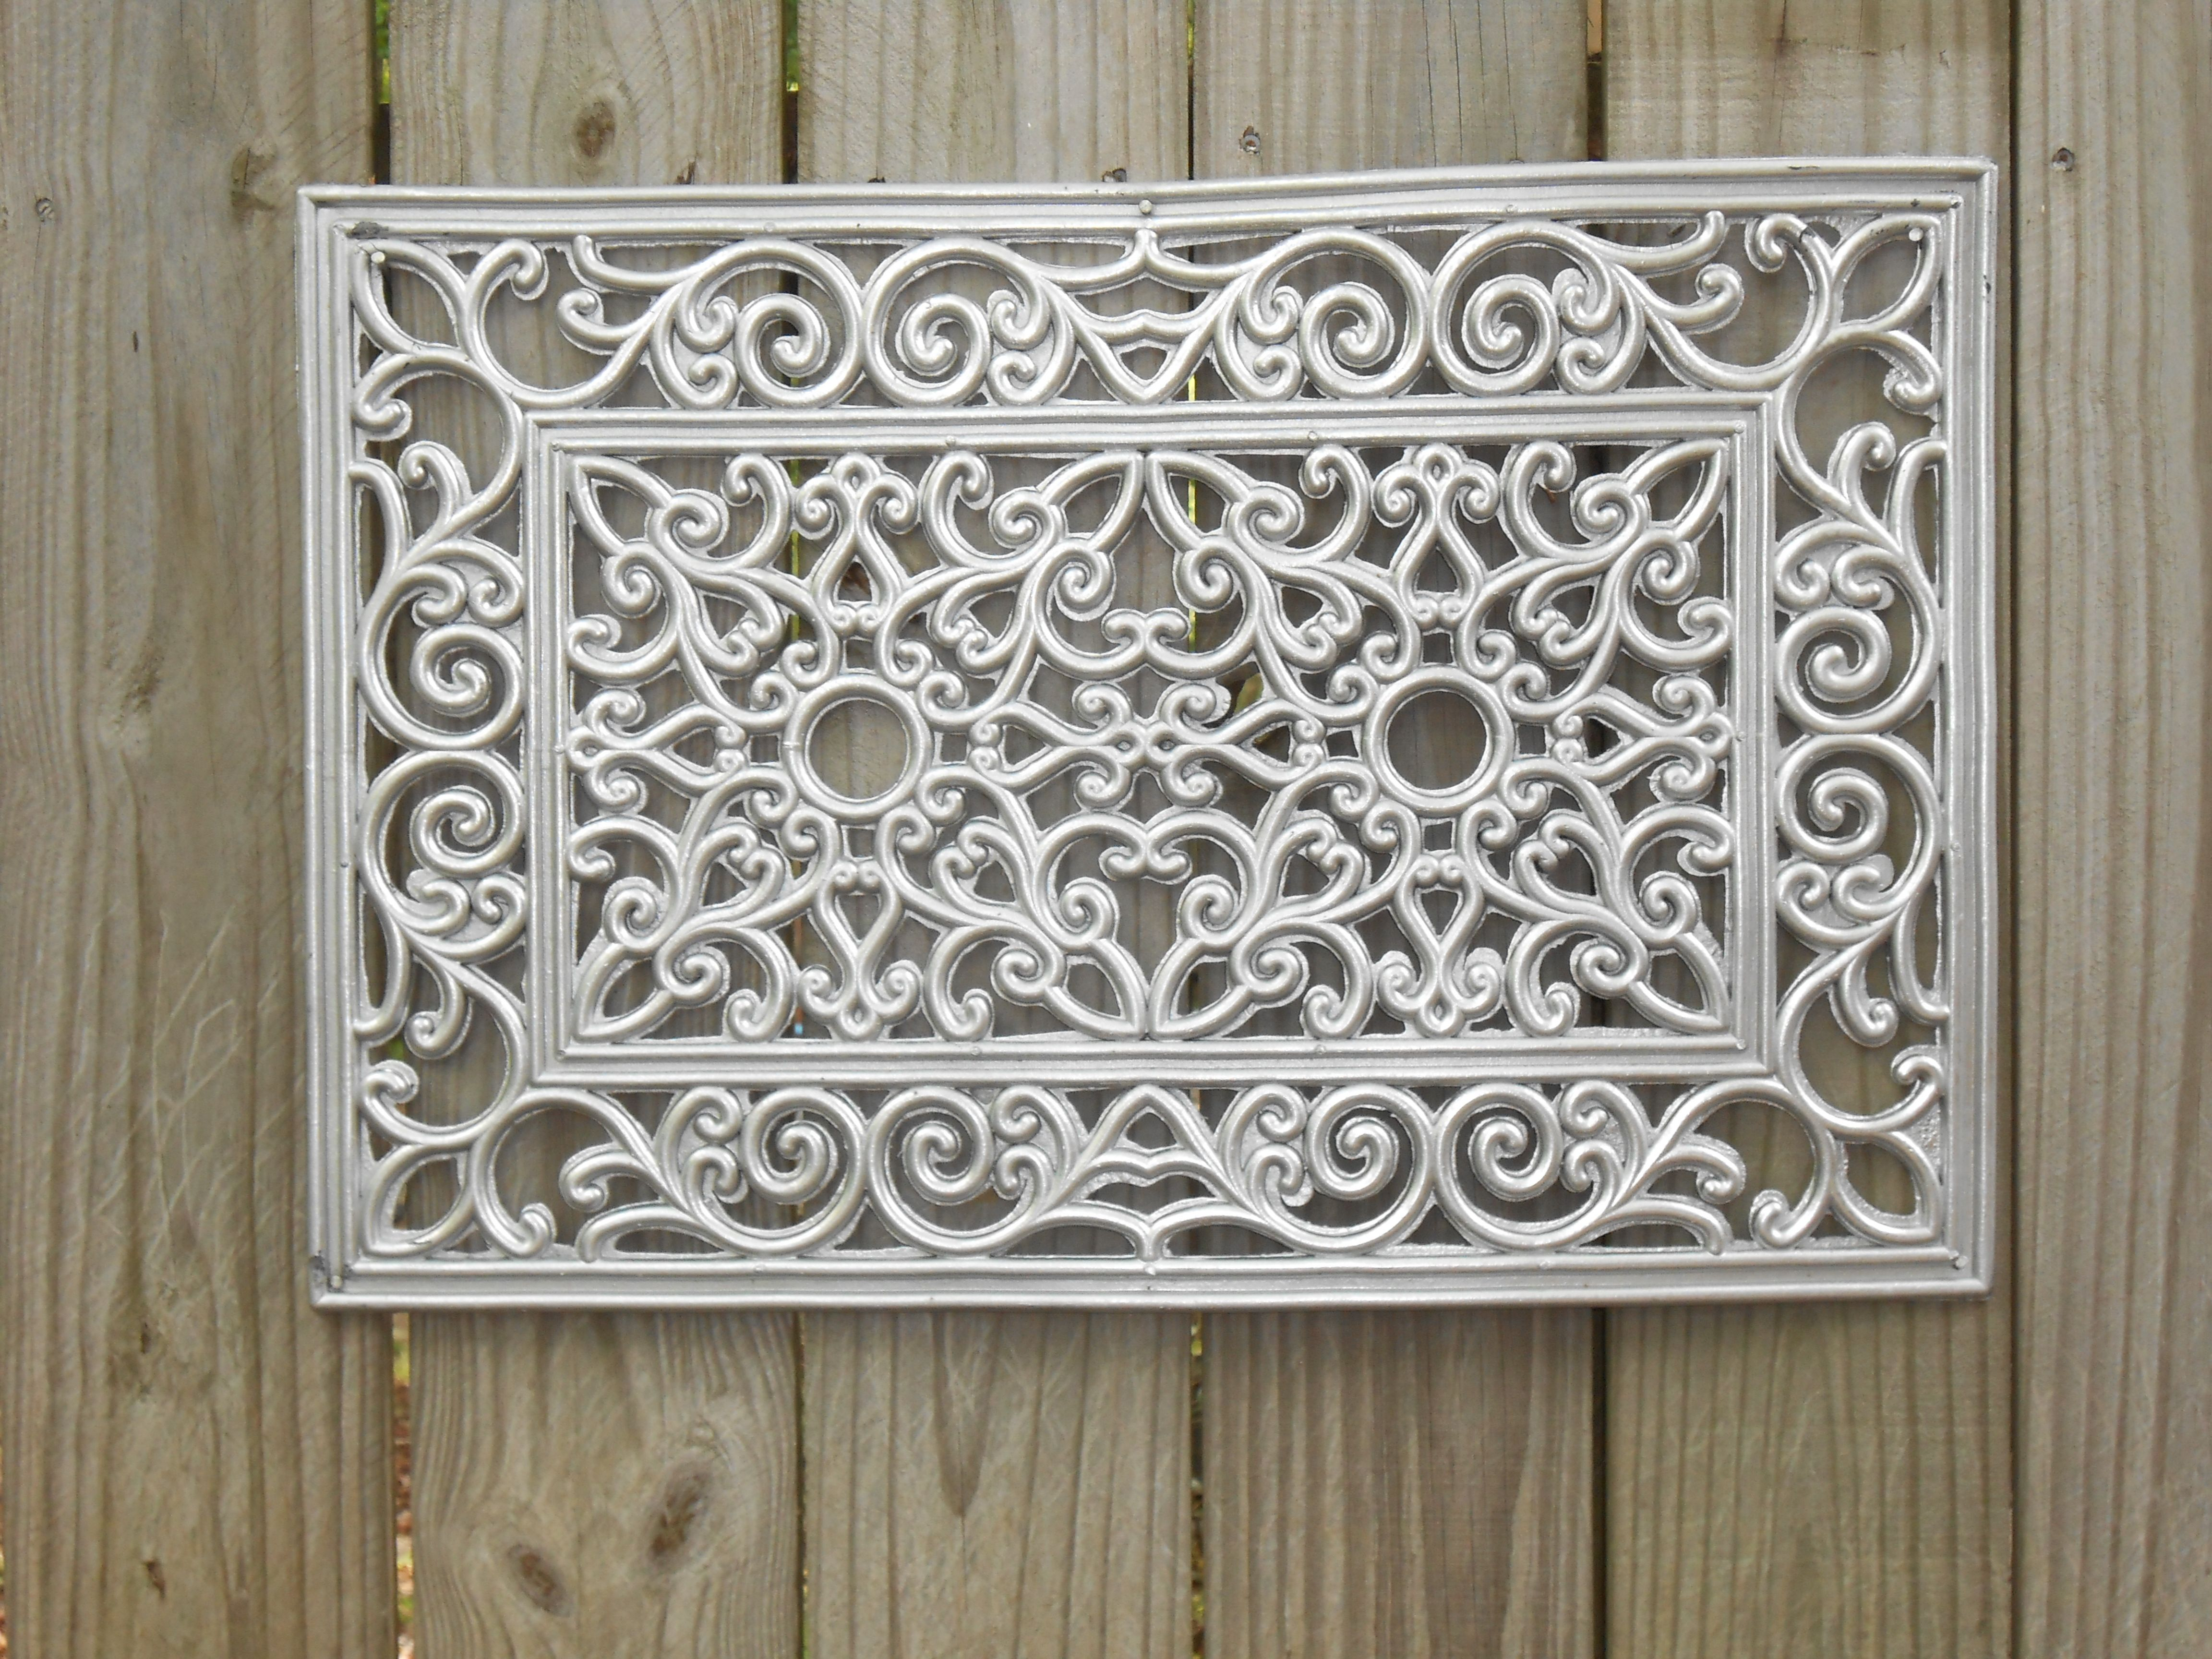 Rubber mats garden -  5 Black Rubber Door Mat Spray Painted With Silver Metal Finish Paint Fence Art